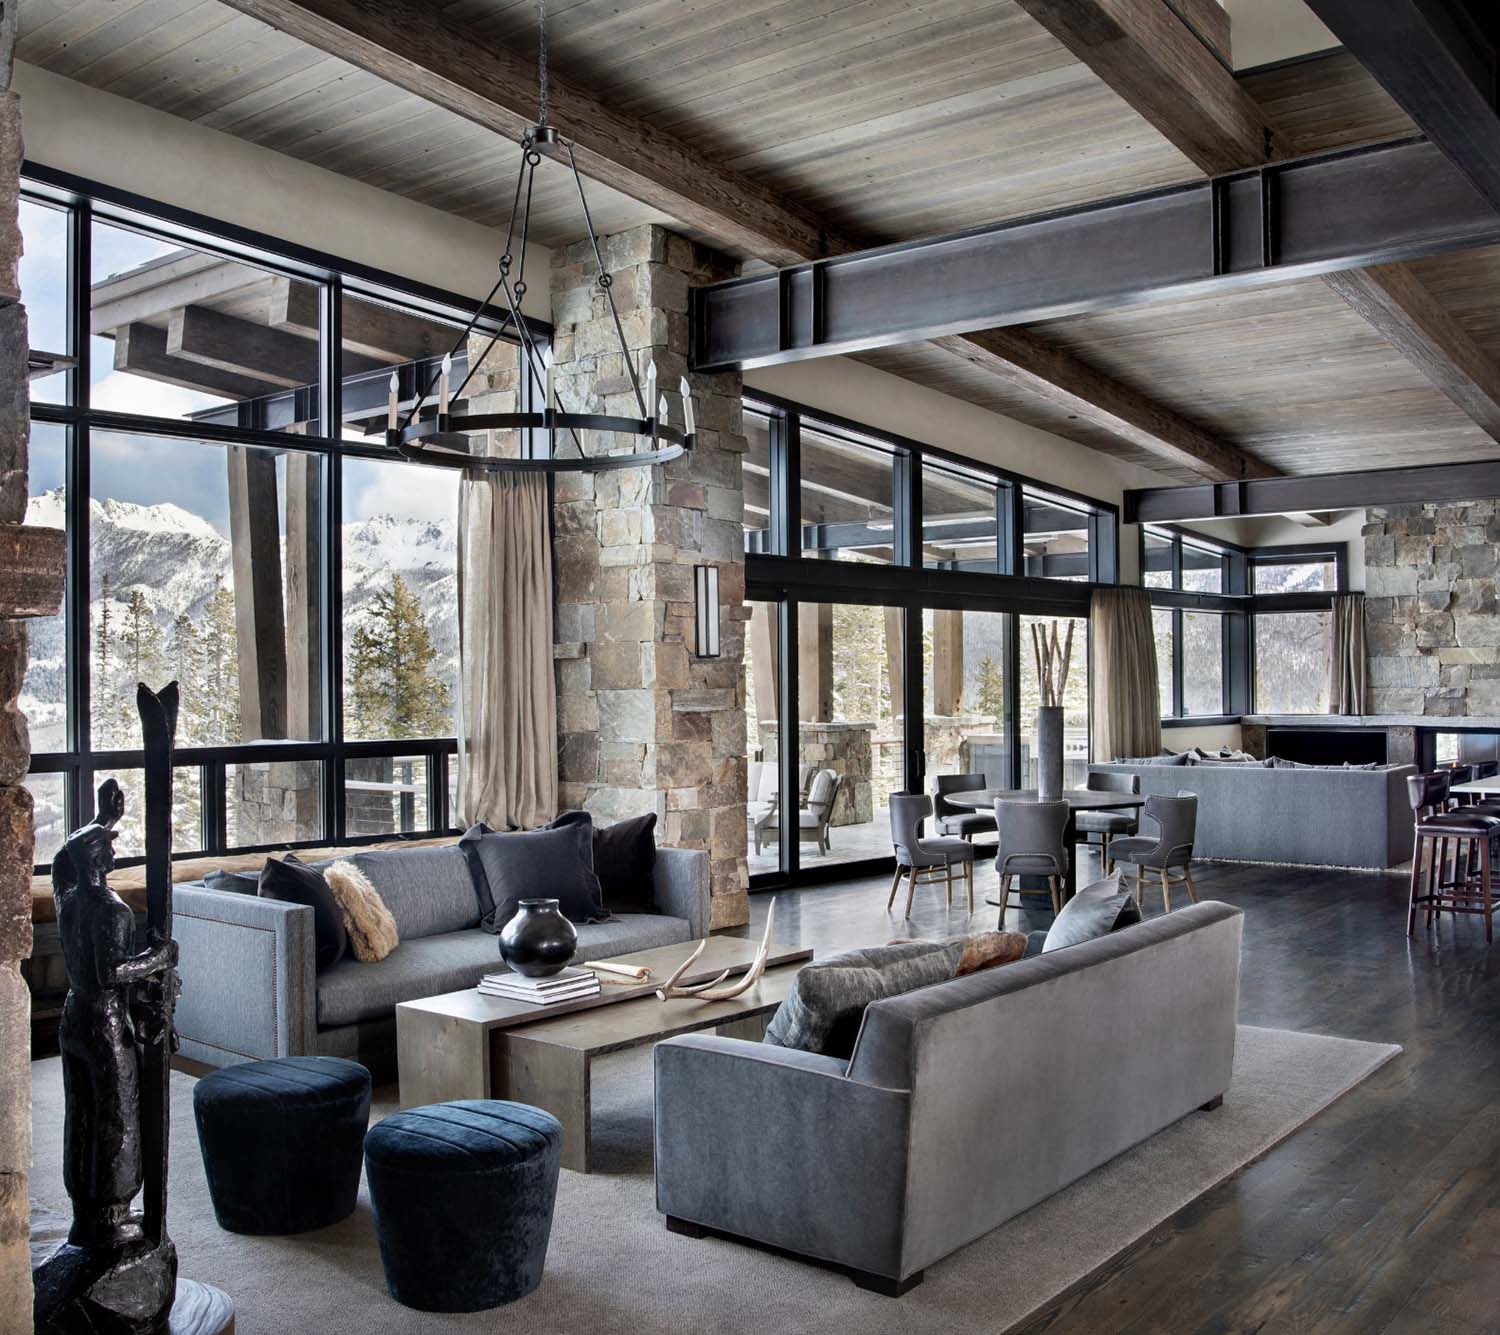 Incredible mountain modern dwelling offers slope-side ...